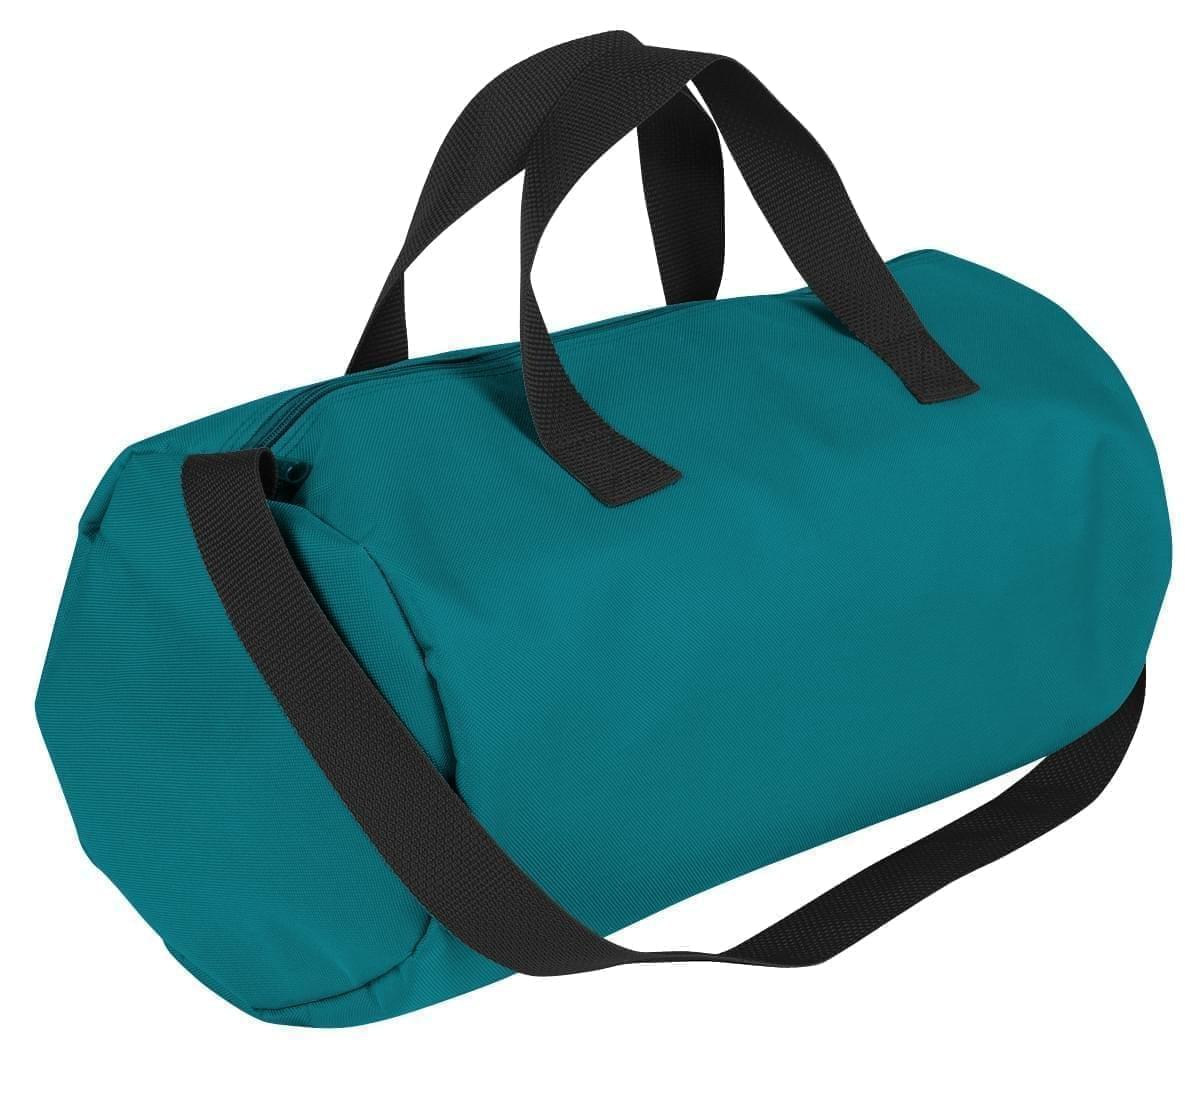 USA Made Nylon Poly Gym Roll Bags, Turquoise-Black, ROCX31AA9R